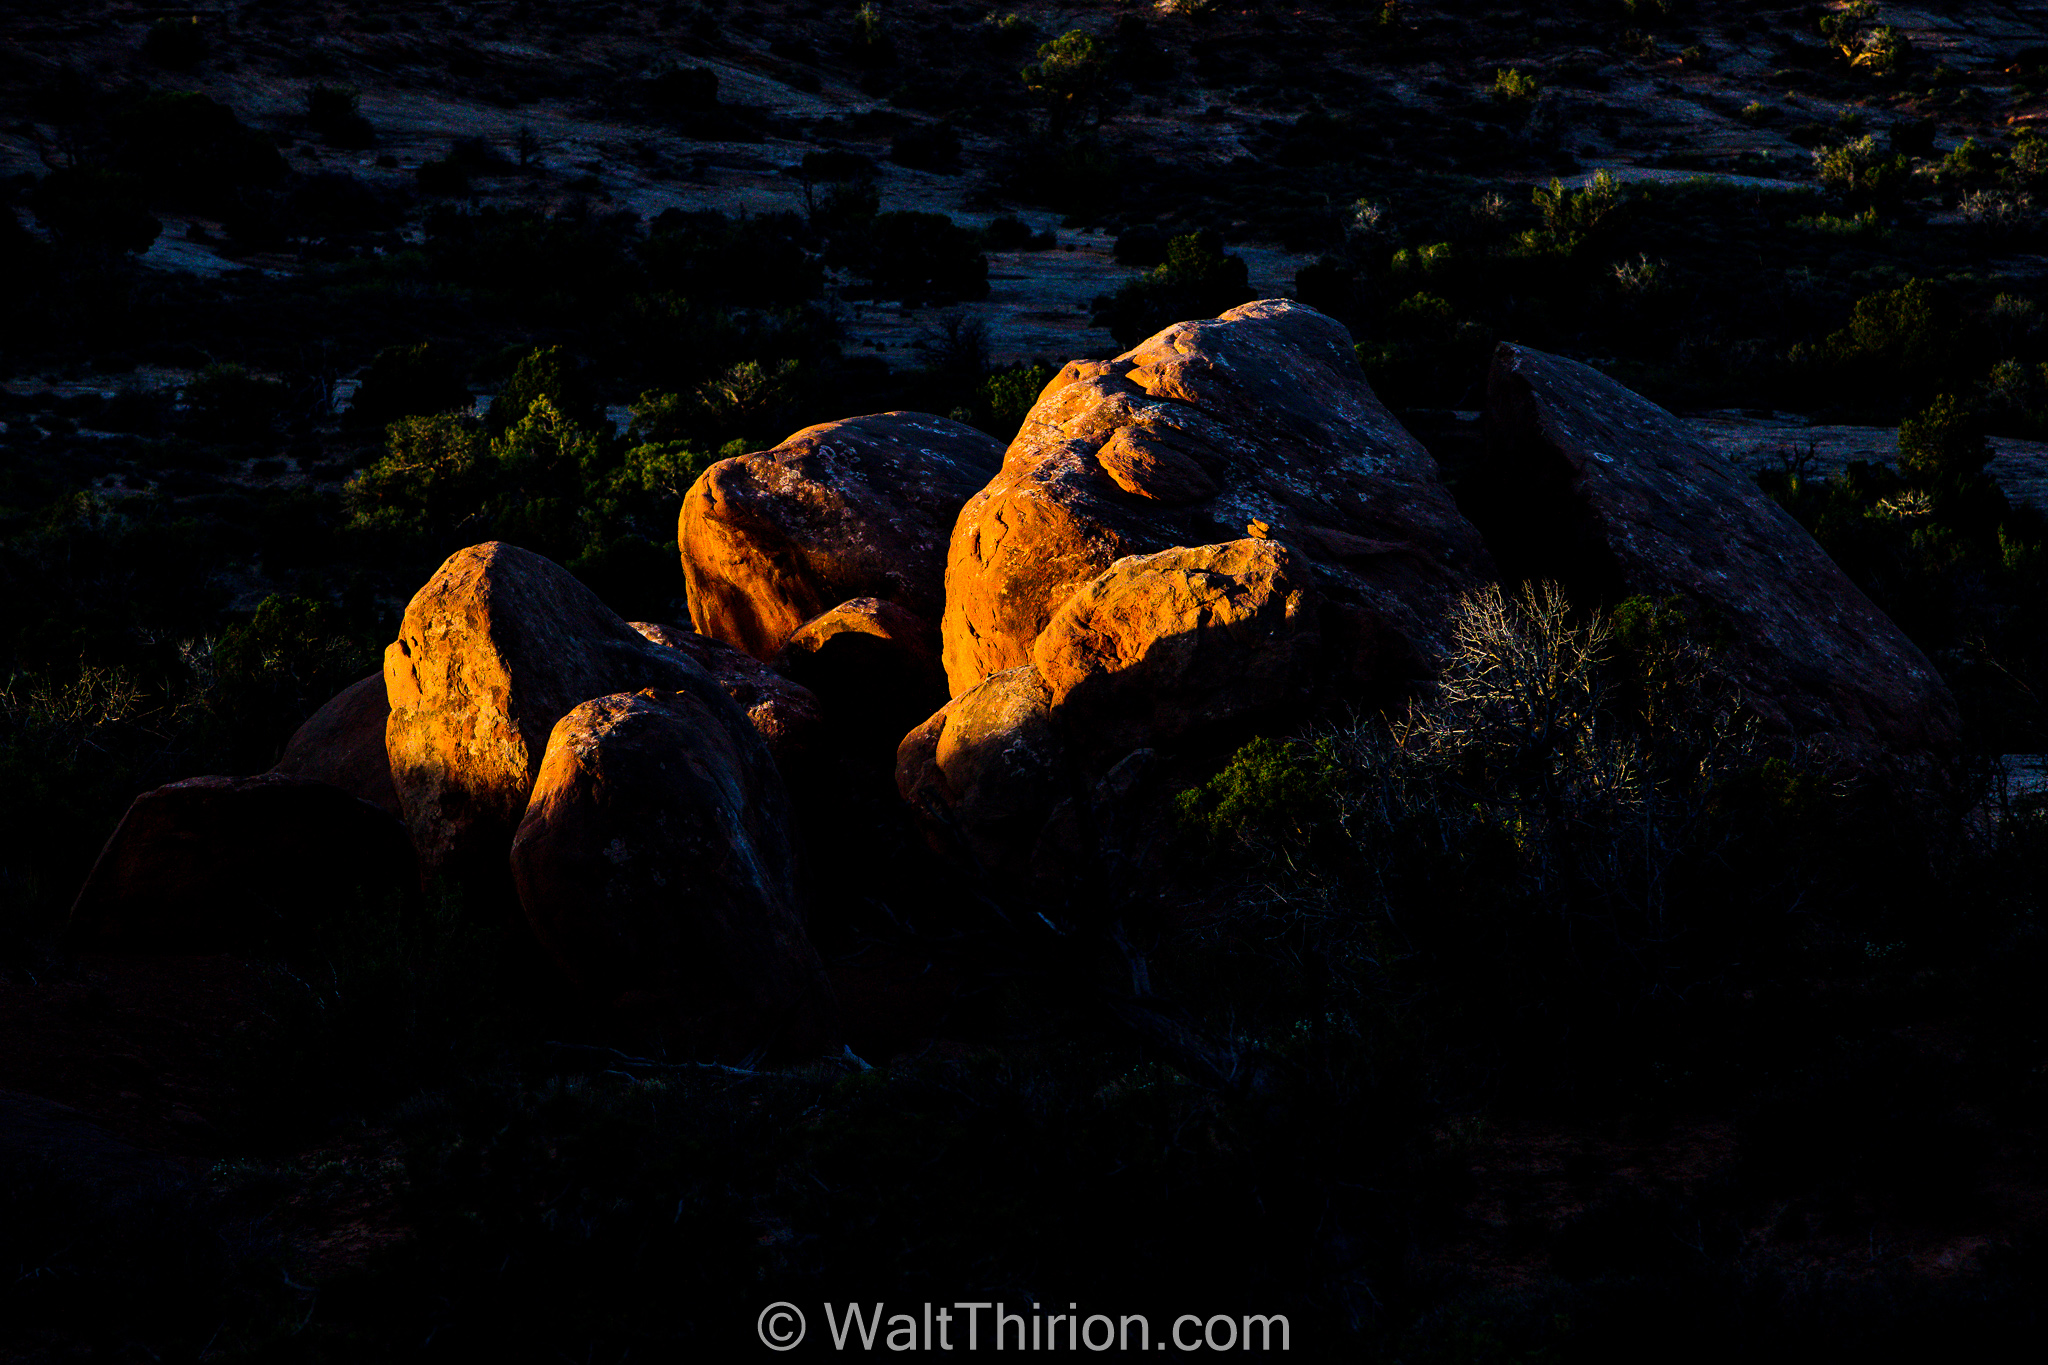 01-Walt Thirion - Arches